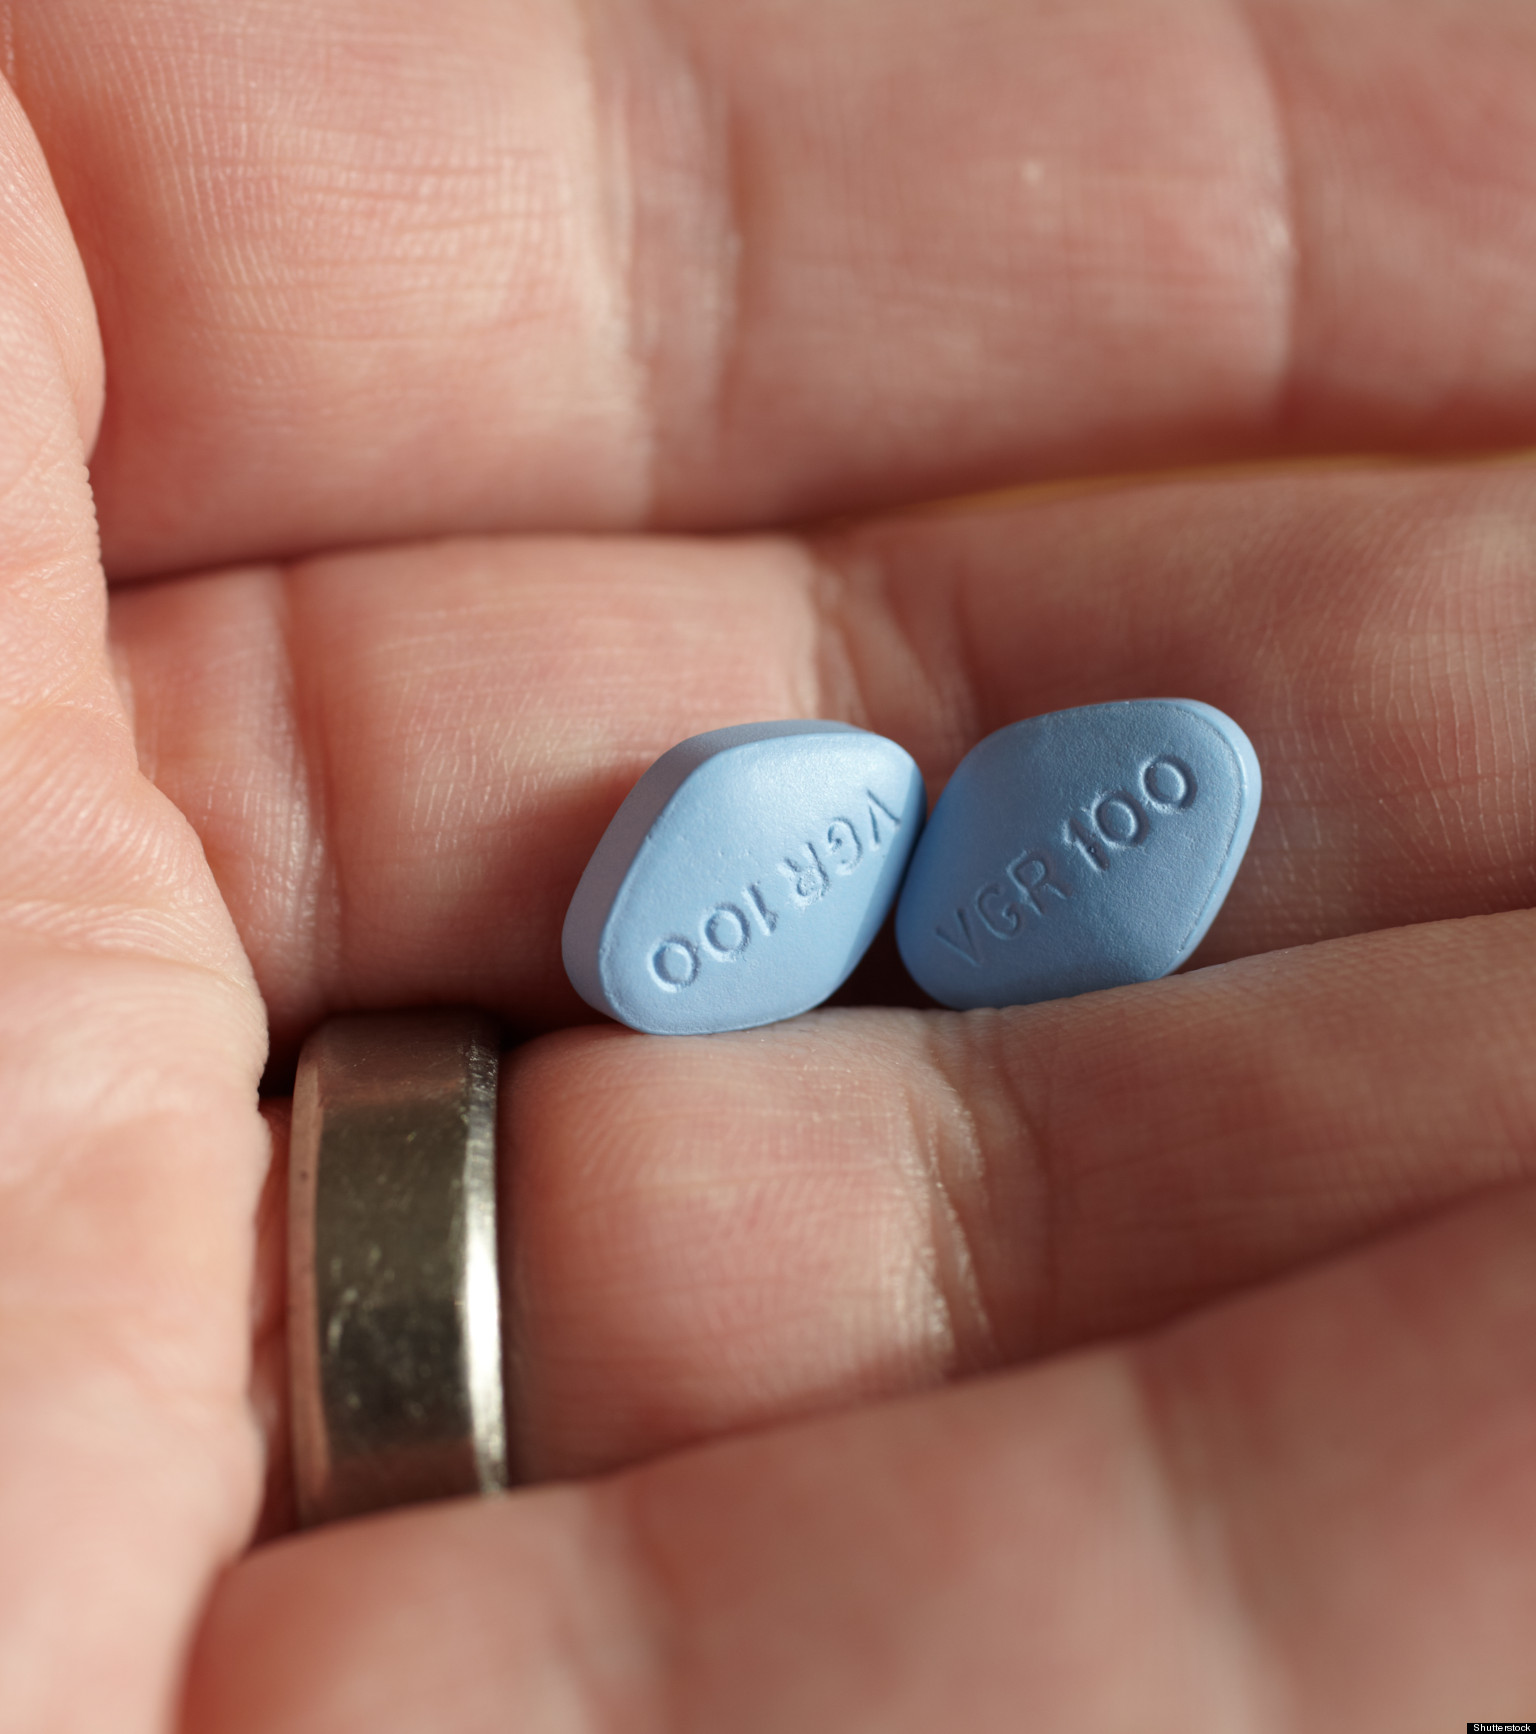 The Little Blue Pill That Ruined My Marriage